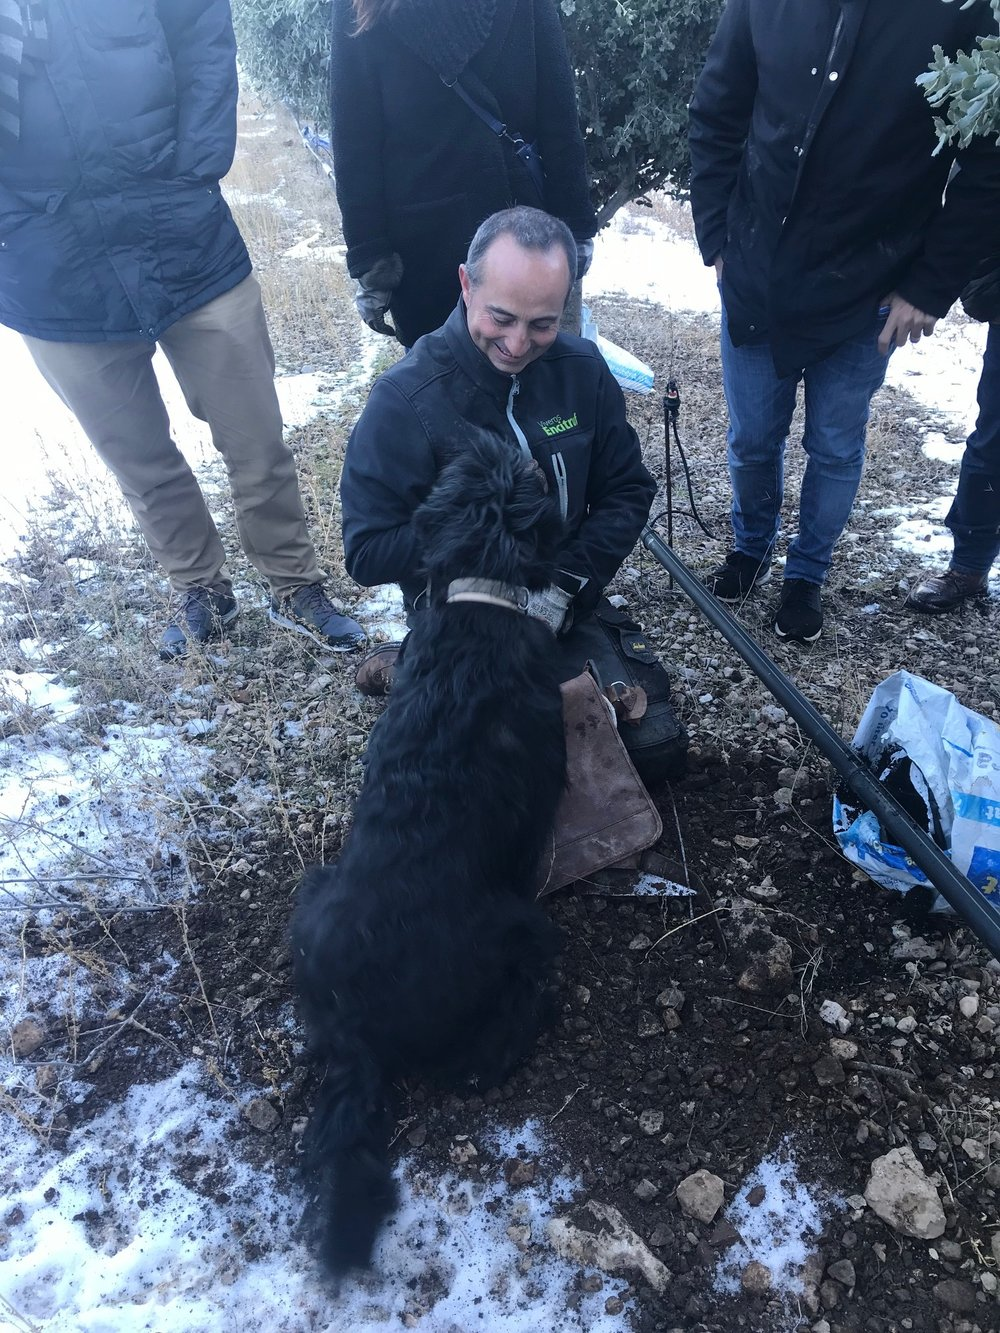 I was fortunate enough to participate as a judge in Soria, Spain's first black truffle festival.